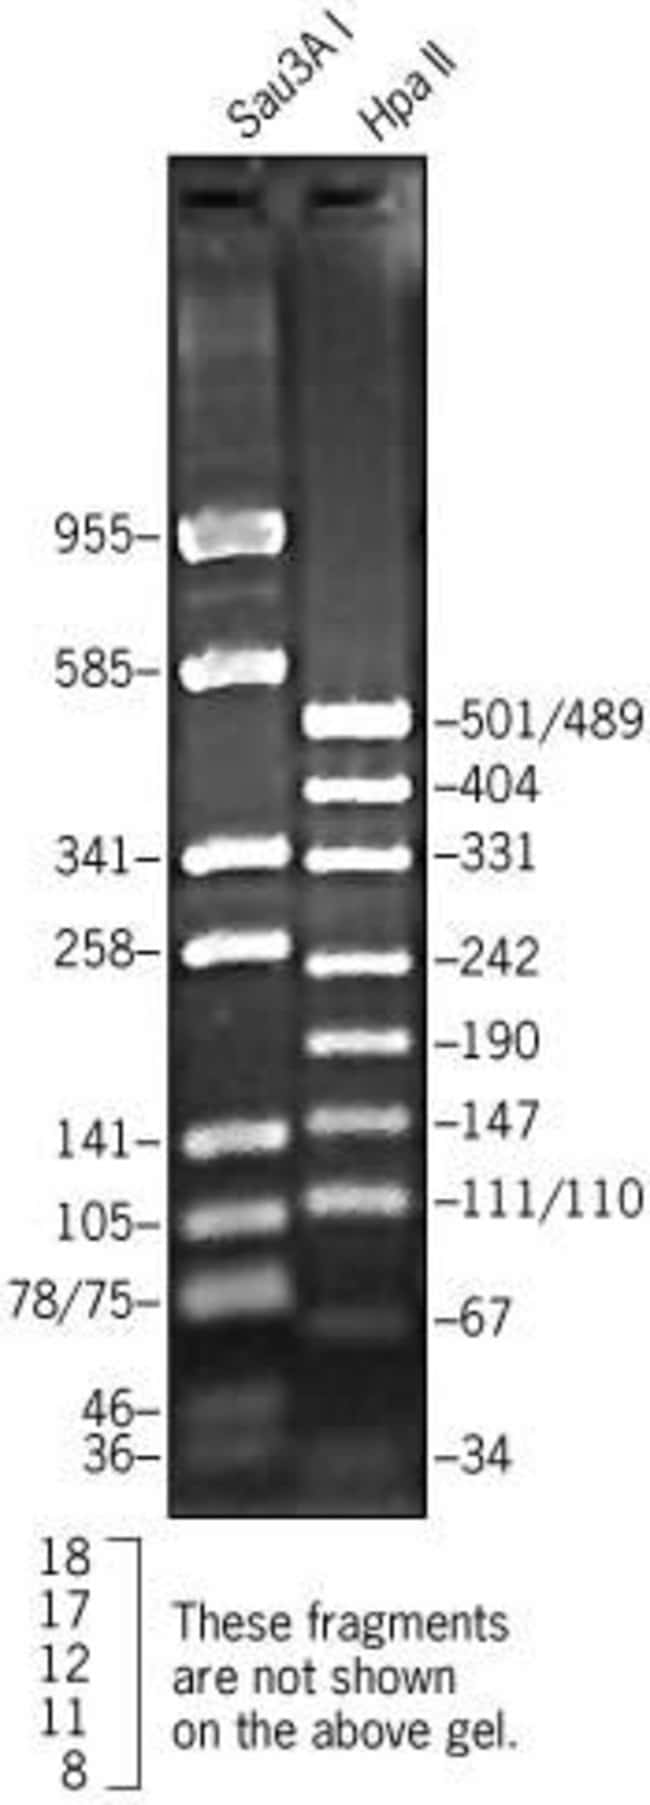 pUC19 DNA, digested with Sau3A I or Hpa II